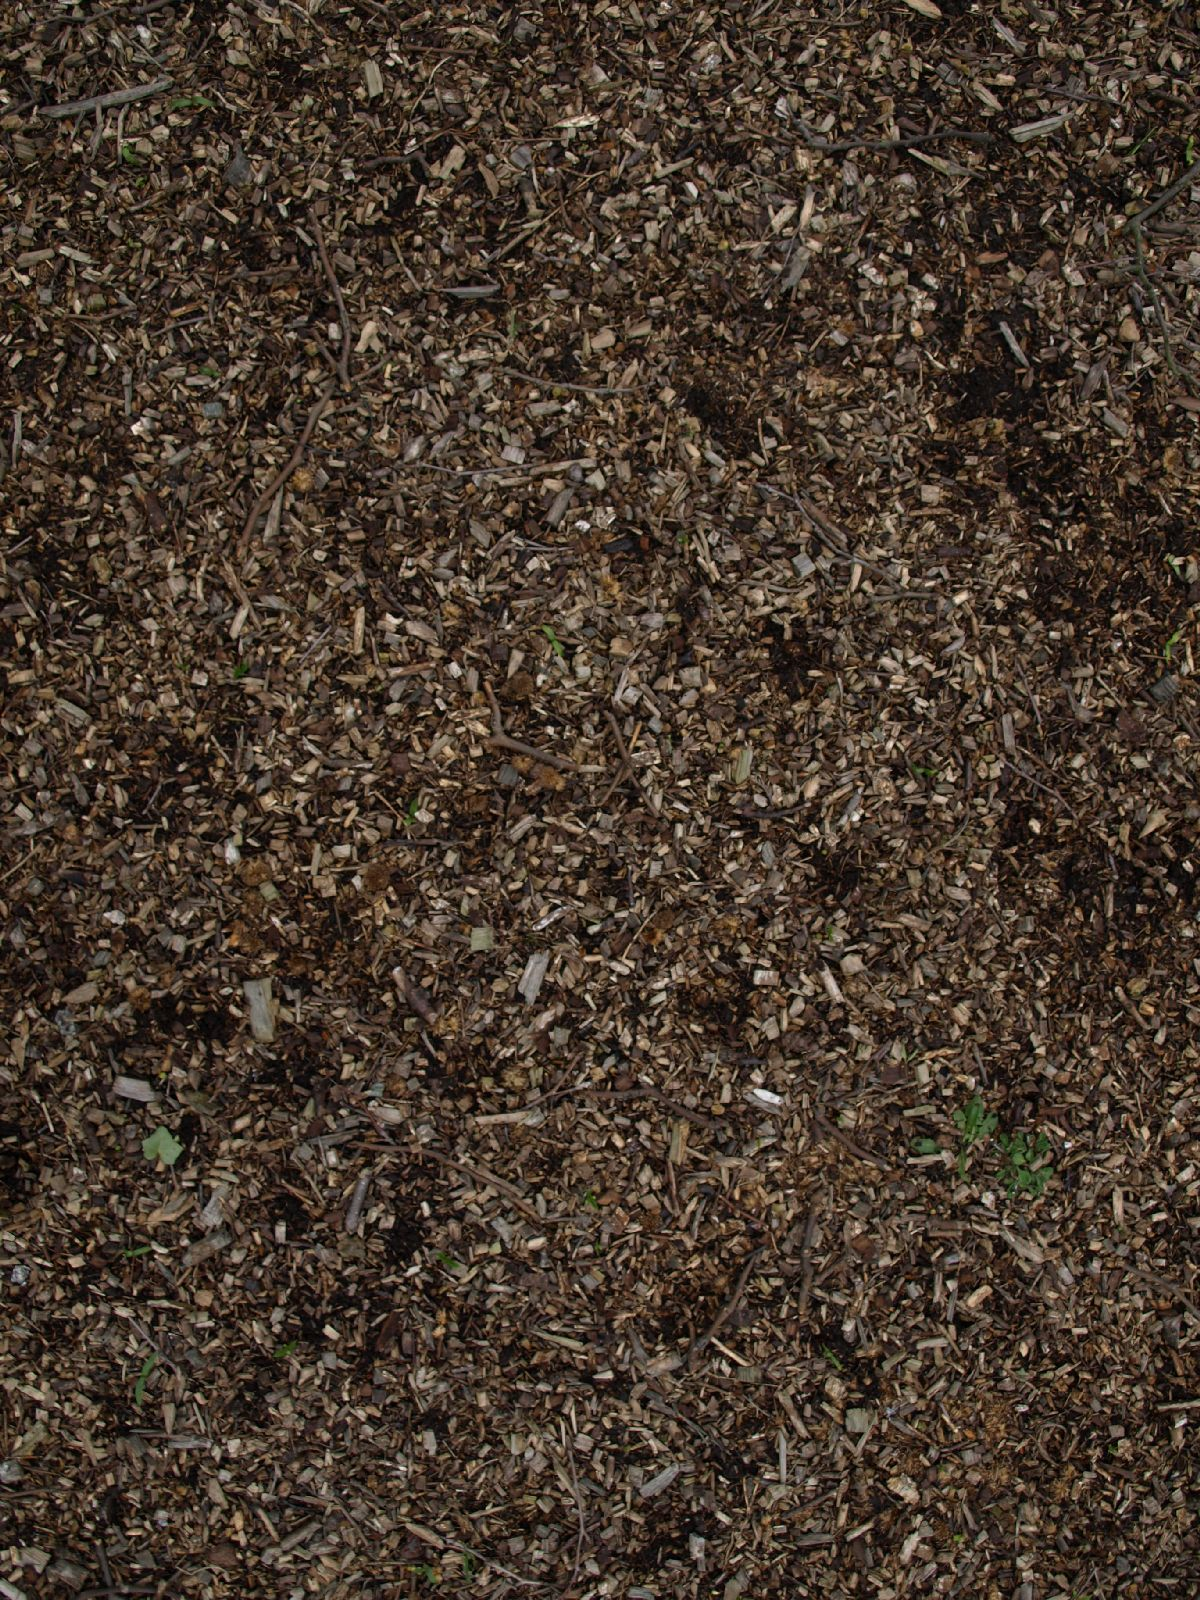 Ground-Nature_Texture_A_P4131165